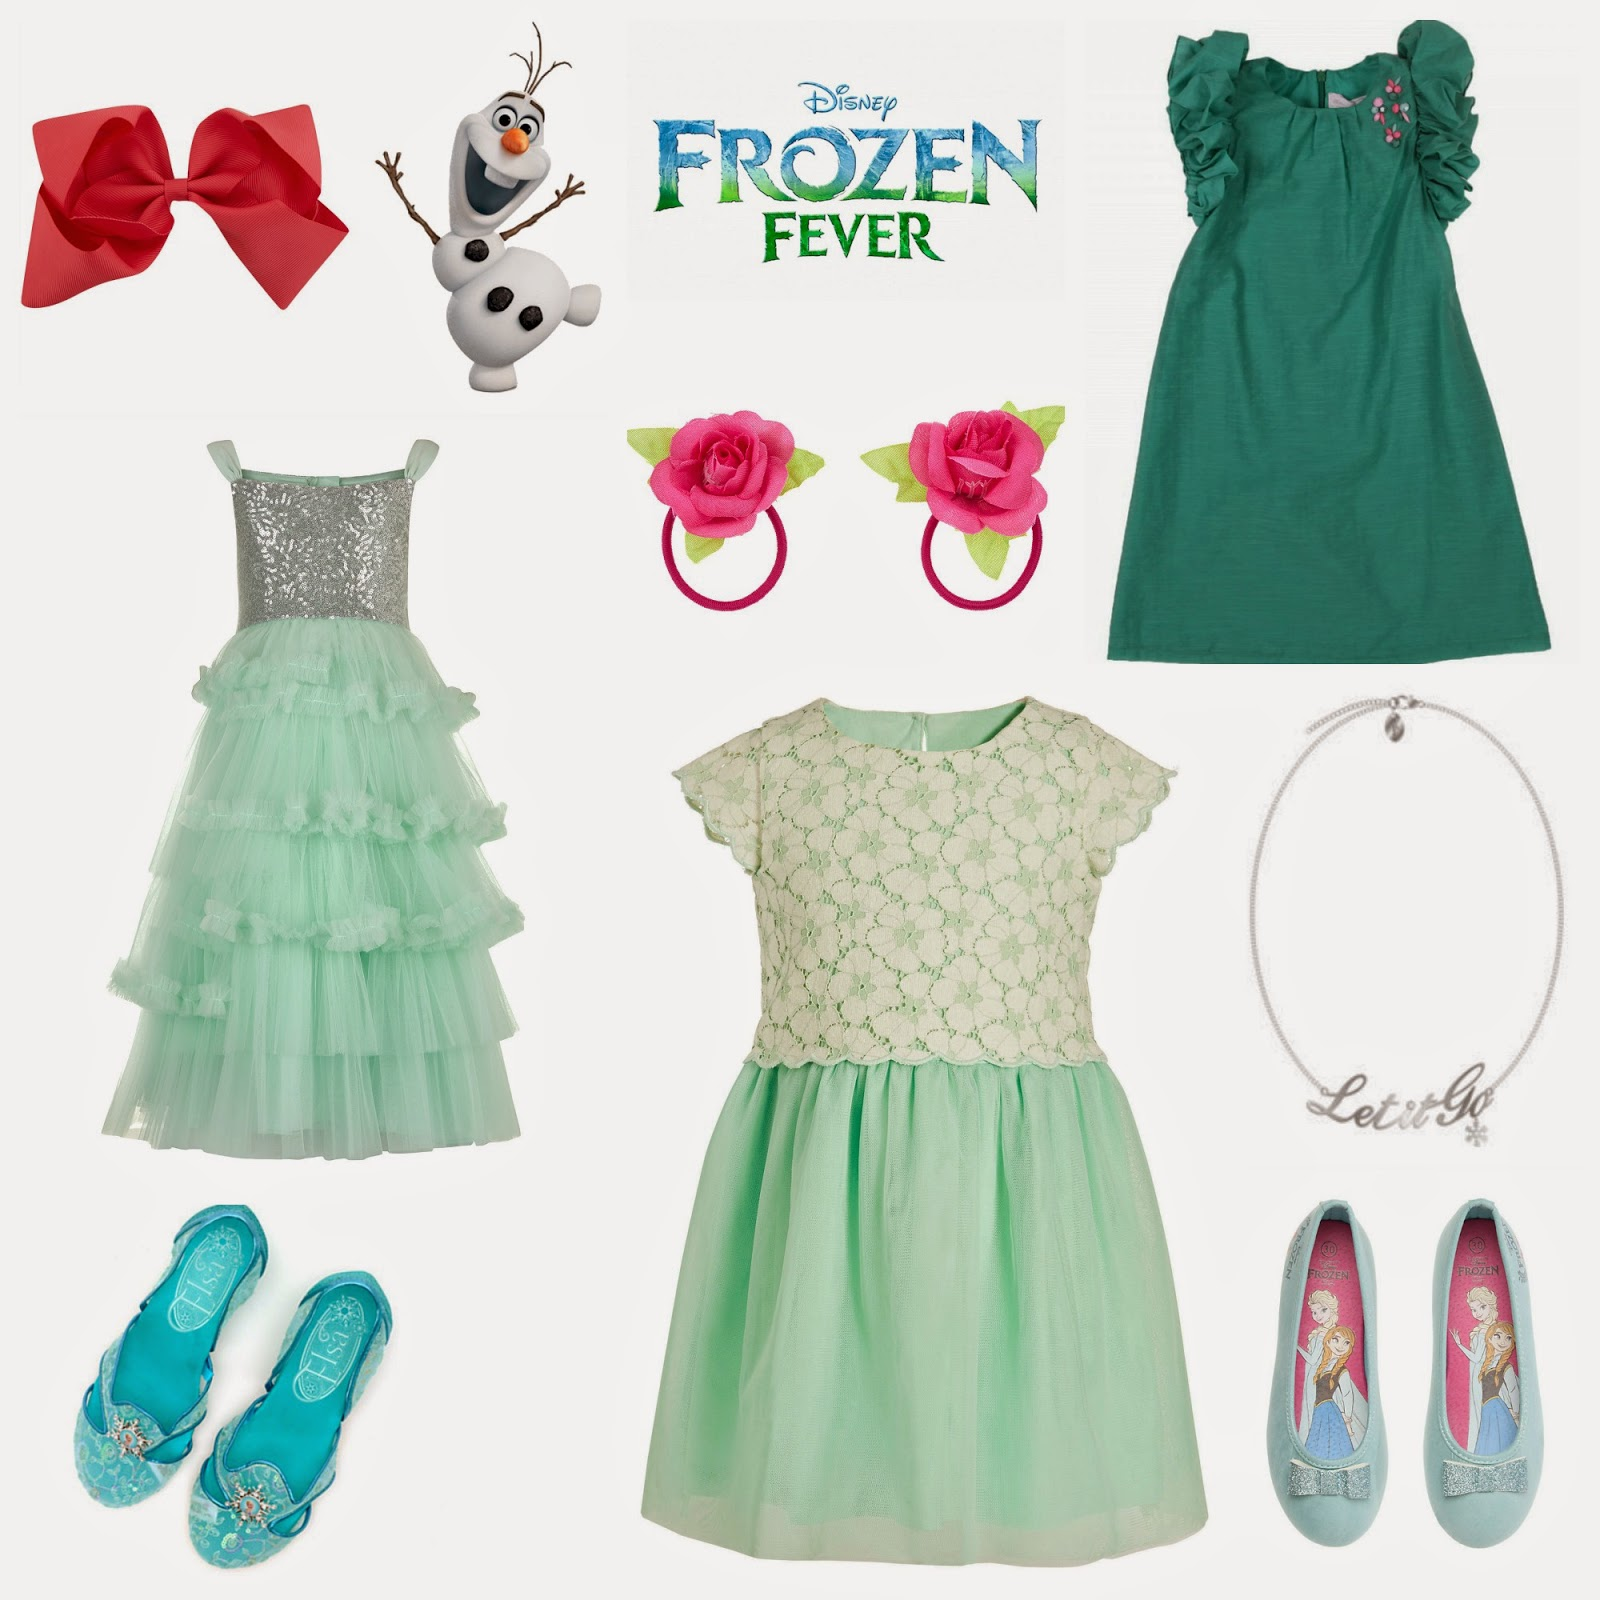 mamasVIB | V. I. BUYS | From blue to green the Frozen sequel (and dress) is here…sort of! | Frozen | Frozen Fever | frozen sequel | frozen movie |elsa dress | anna dress | frozen clothes | elsa green dress | movie | disney | monsoon | dressing up | fashion | style | mamasVIB | frozen frenzy | frozen second movie | sequel to frozen | disney movie | cinderella | cinema | disney movies | movie sequel | frozen 2 | elsa disney dress | kids fashion | kids style | |